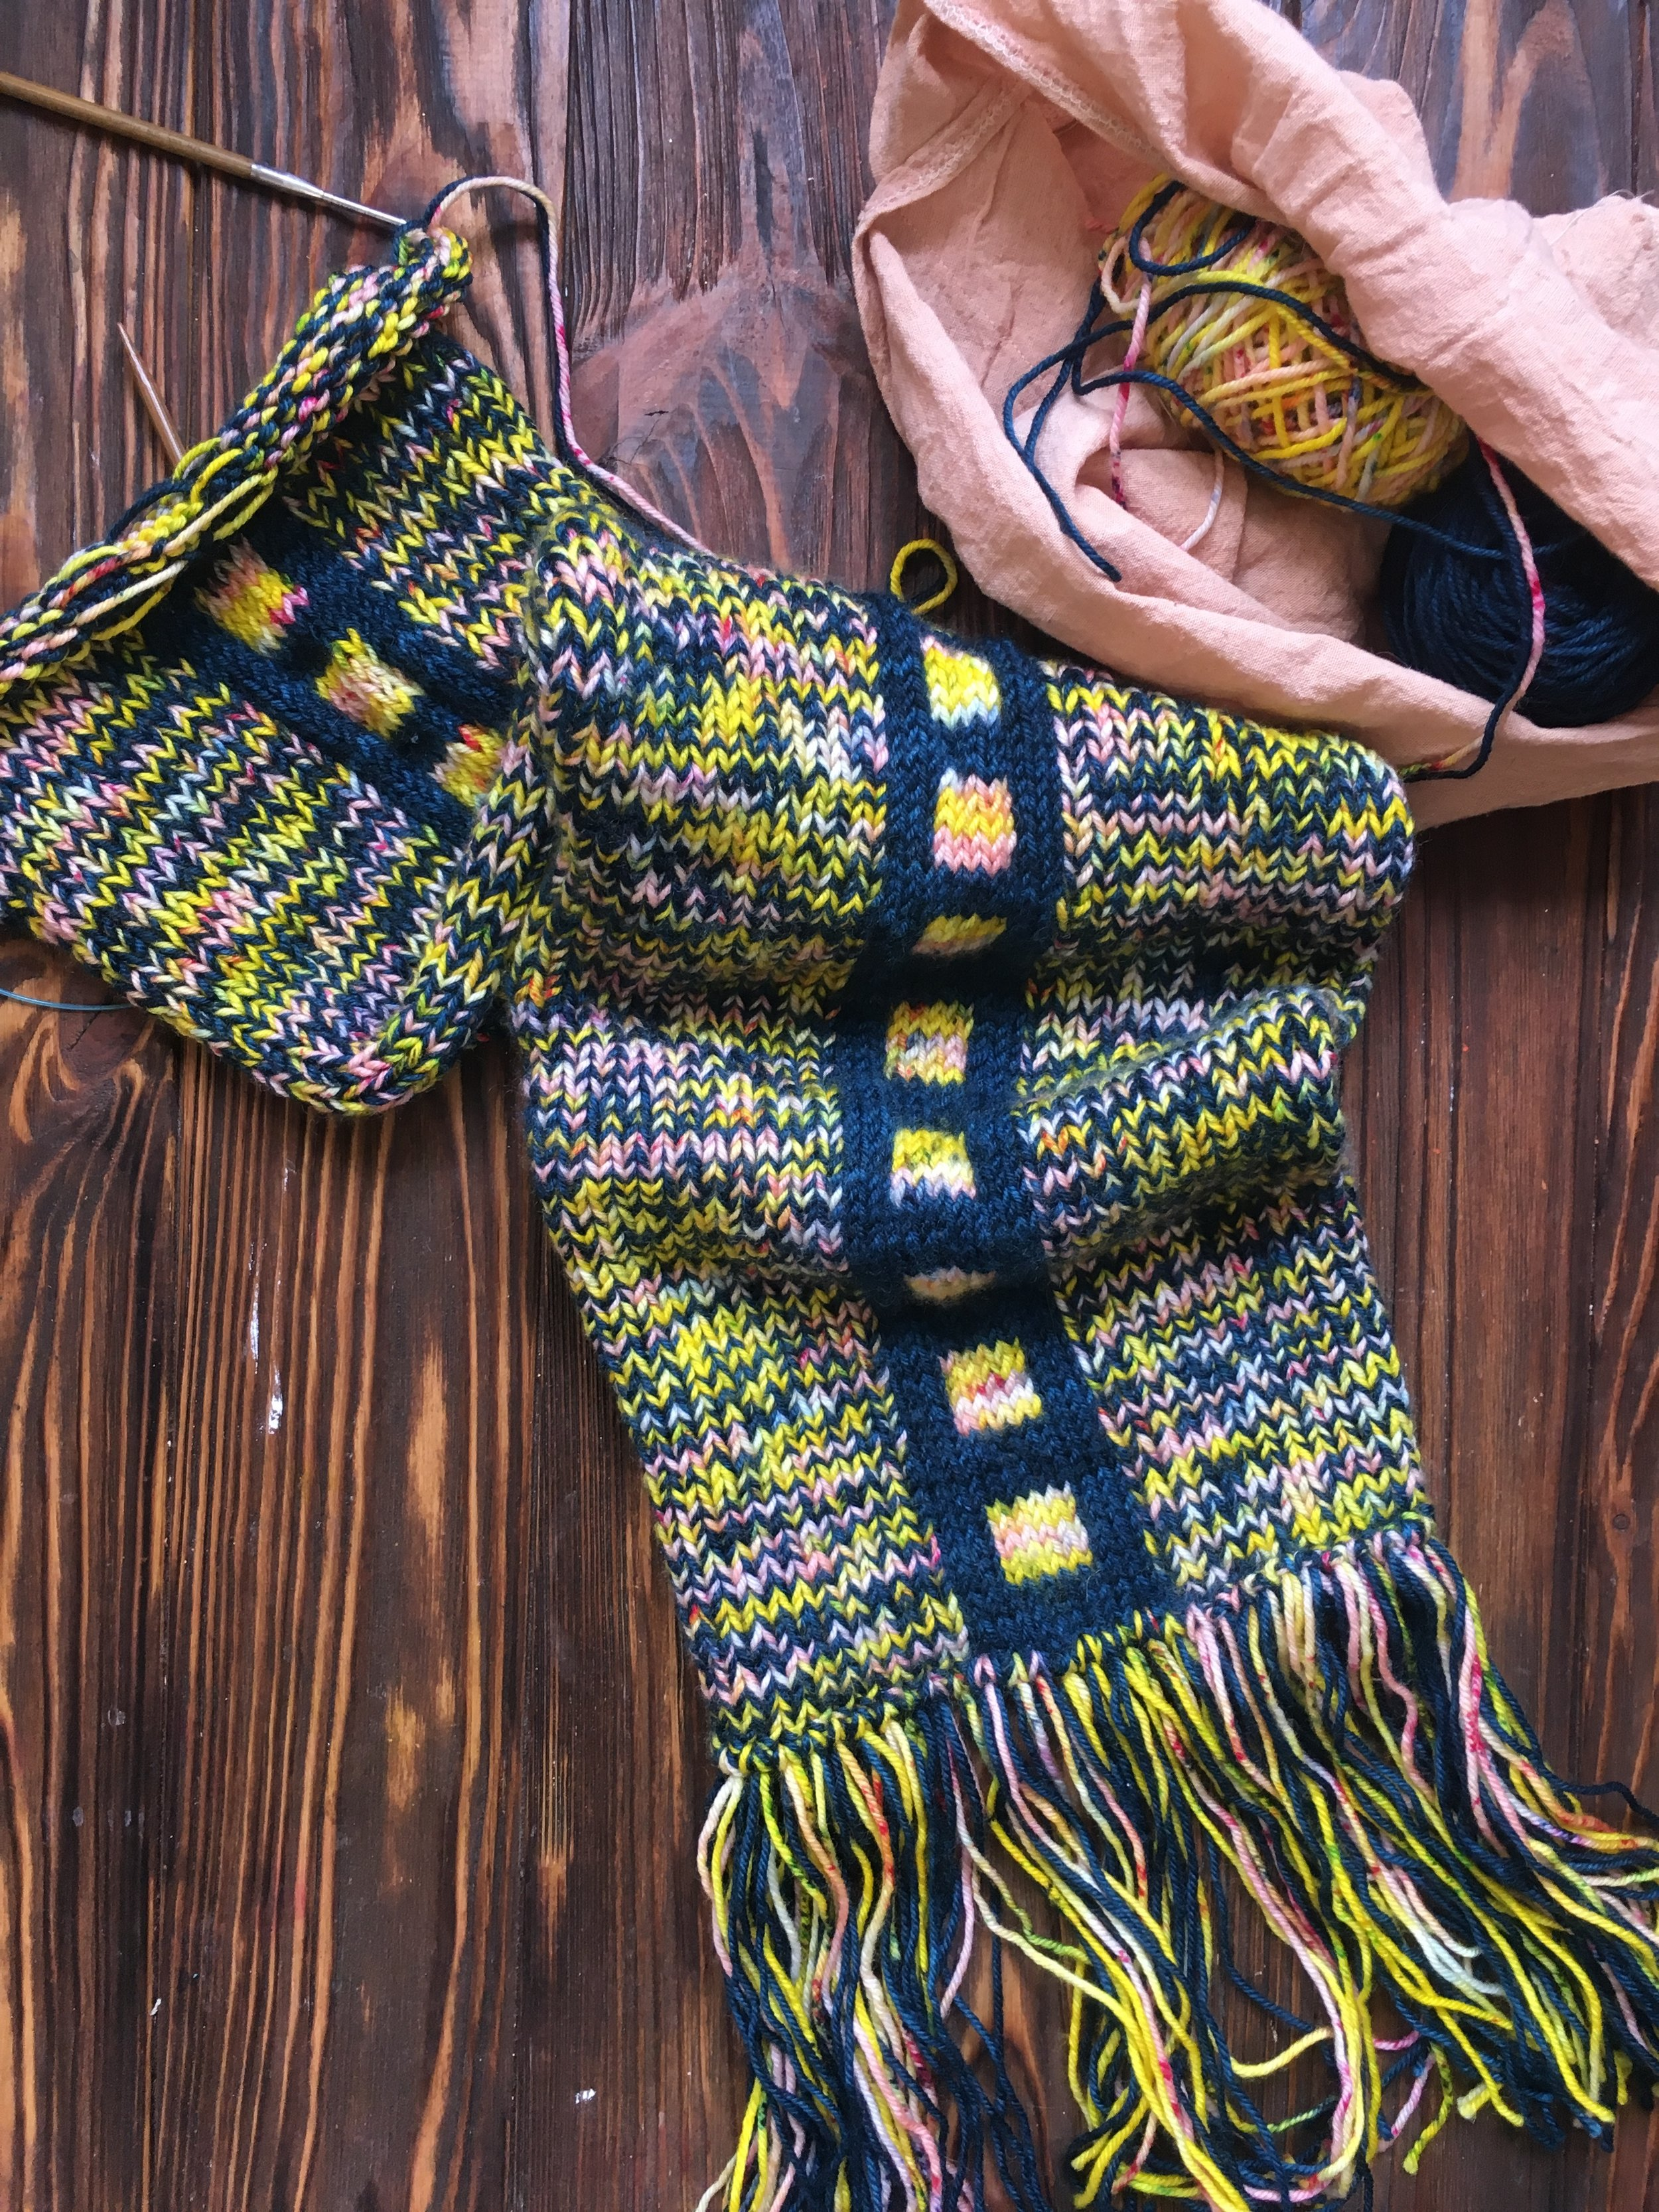 A knitting workshop with Qing Fibre on 1st September will have you trying new techniques on this special scarf project.